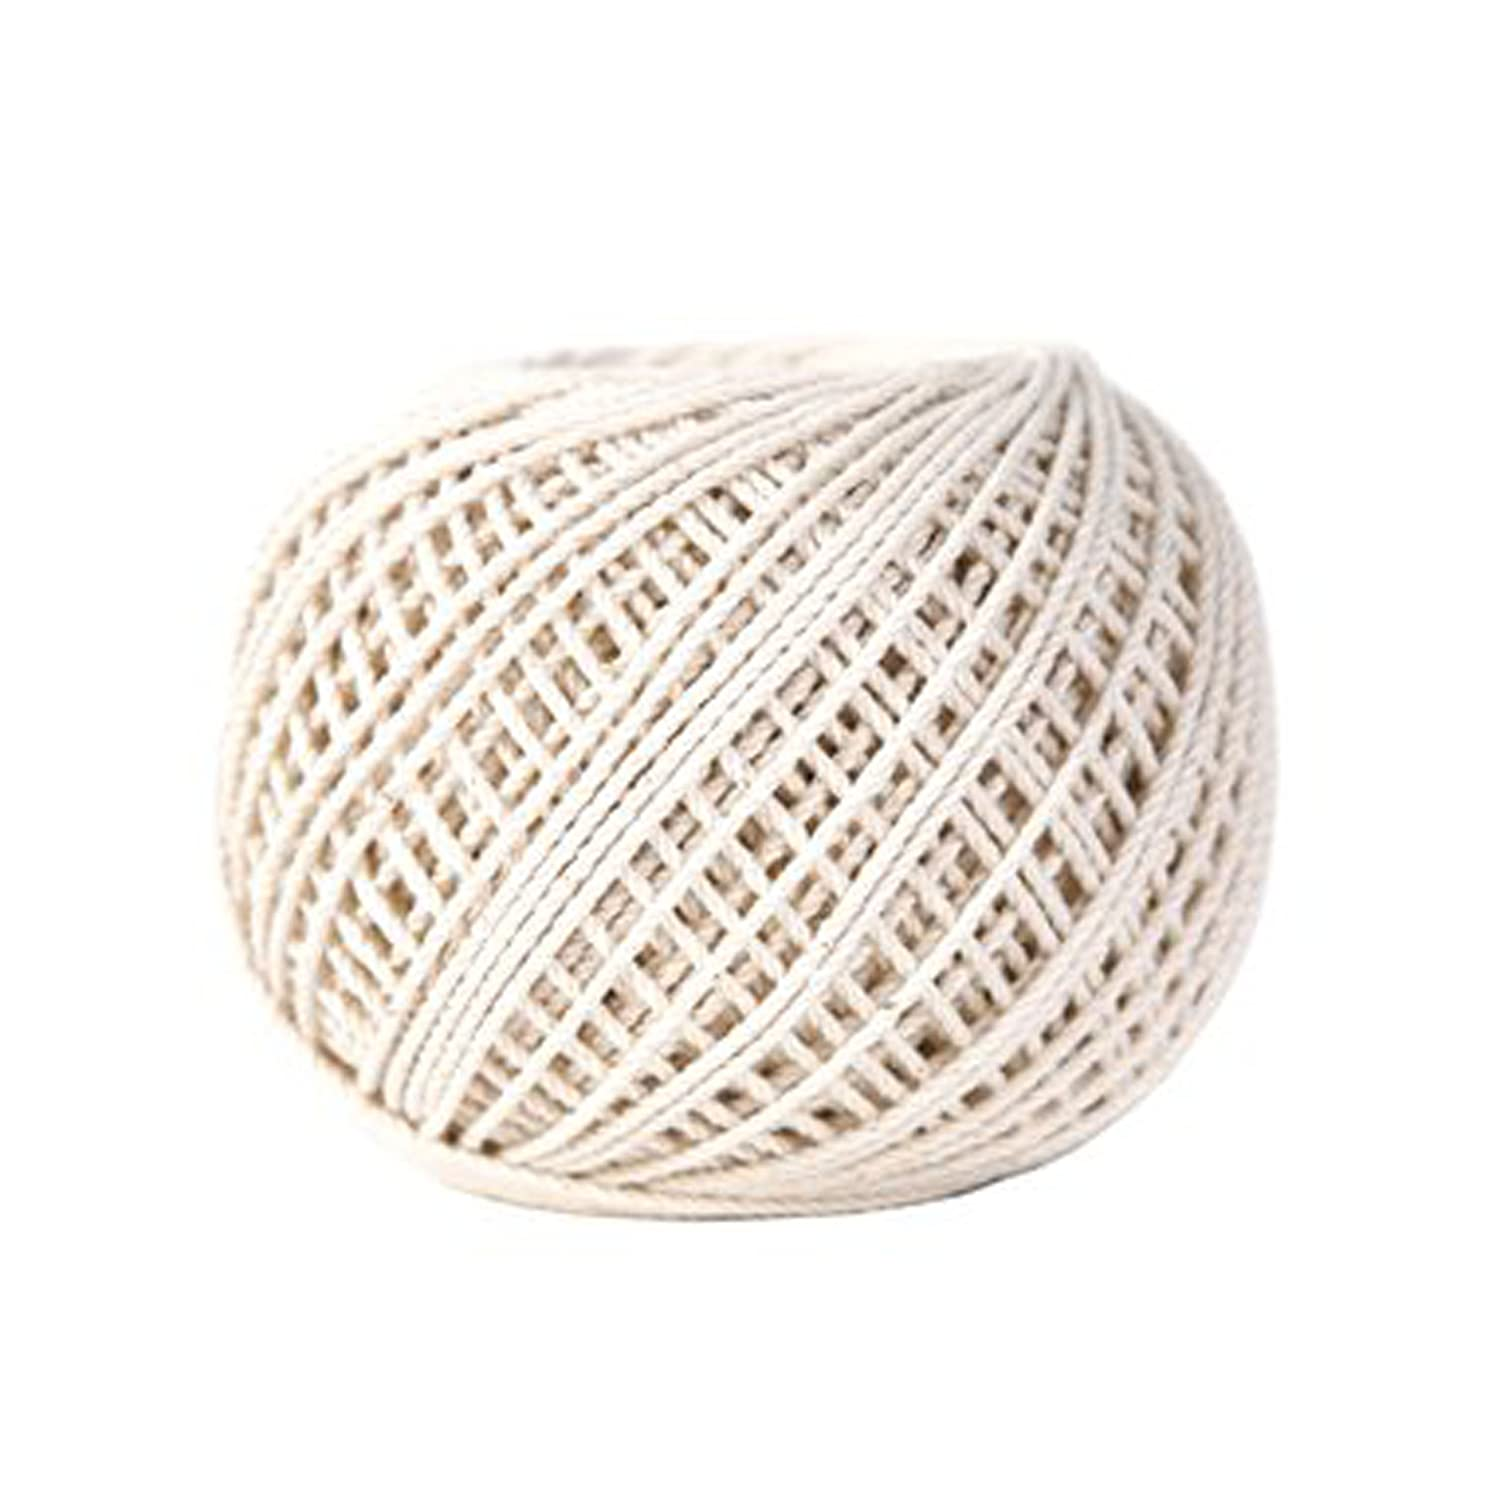 Koch Industries Twisted Cotton Cable Cord Ball 5422105 Natural 21 by 350 Feet